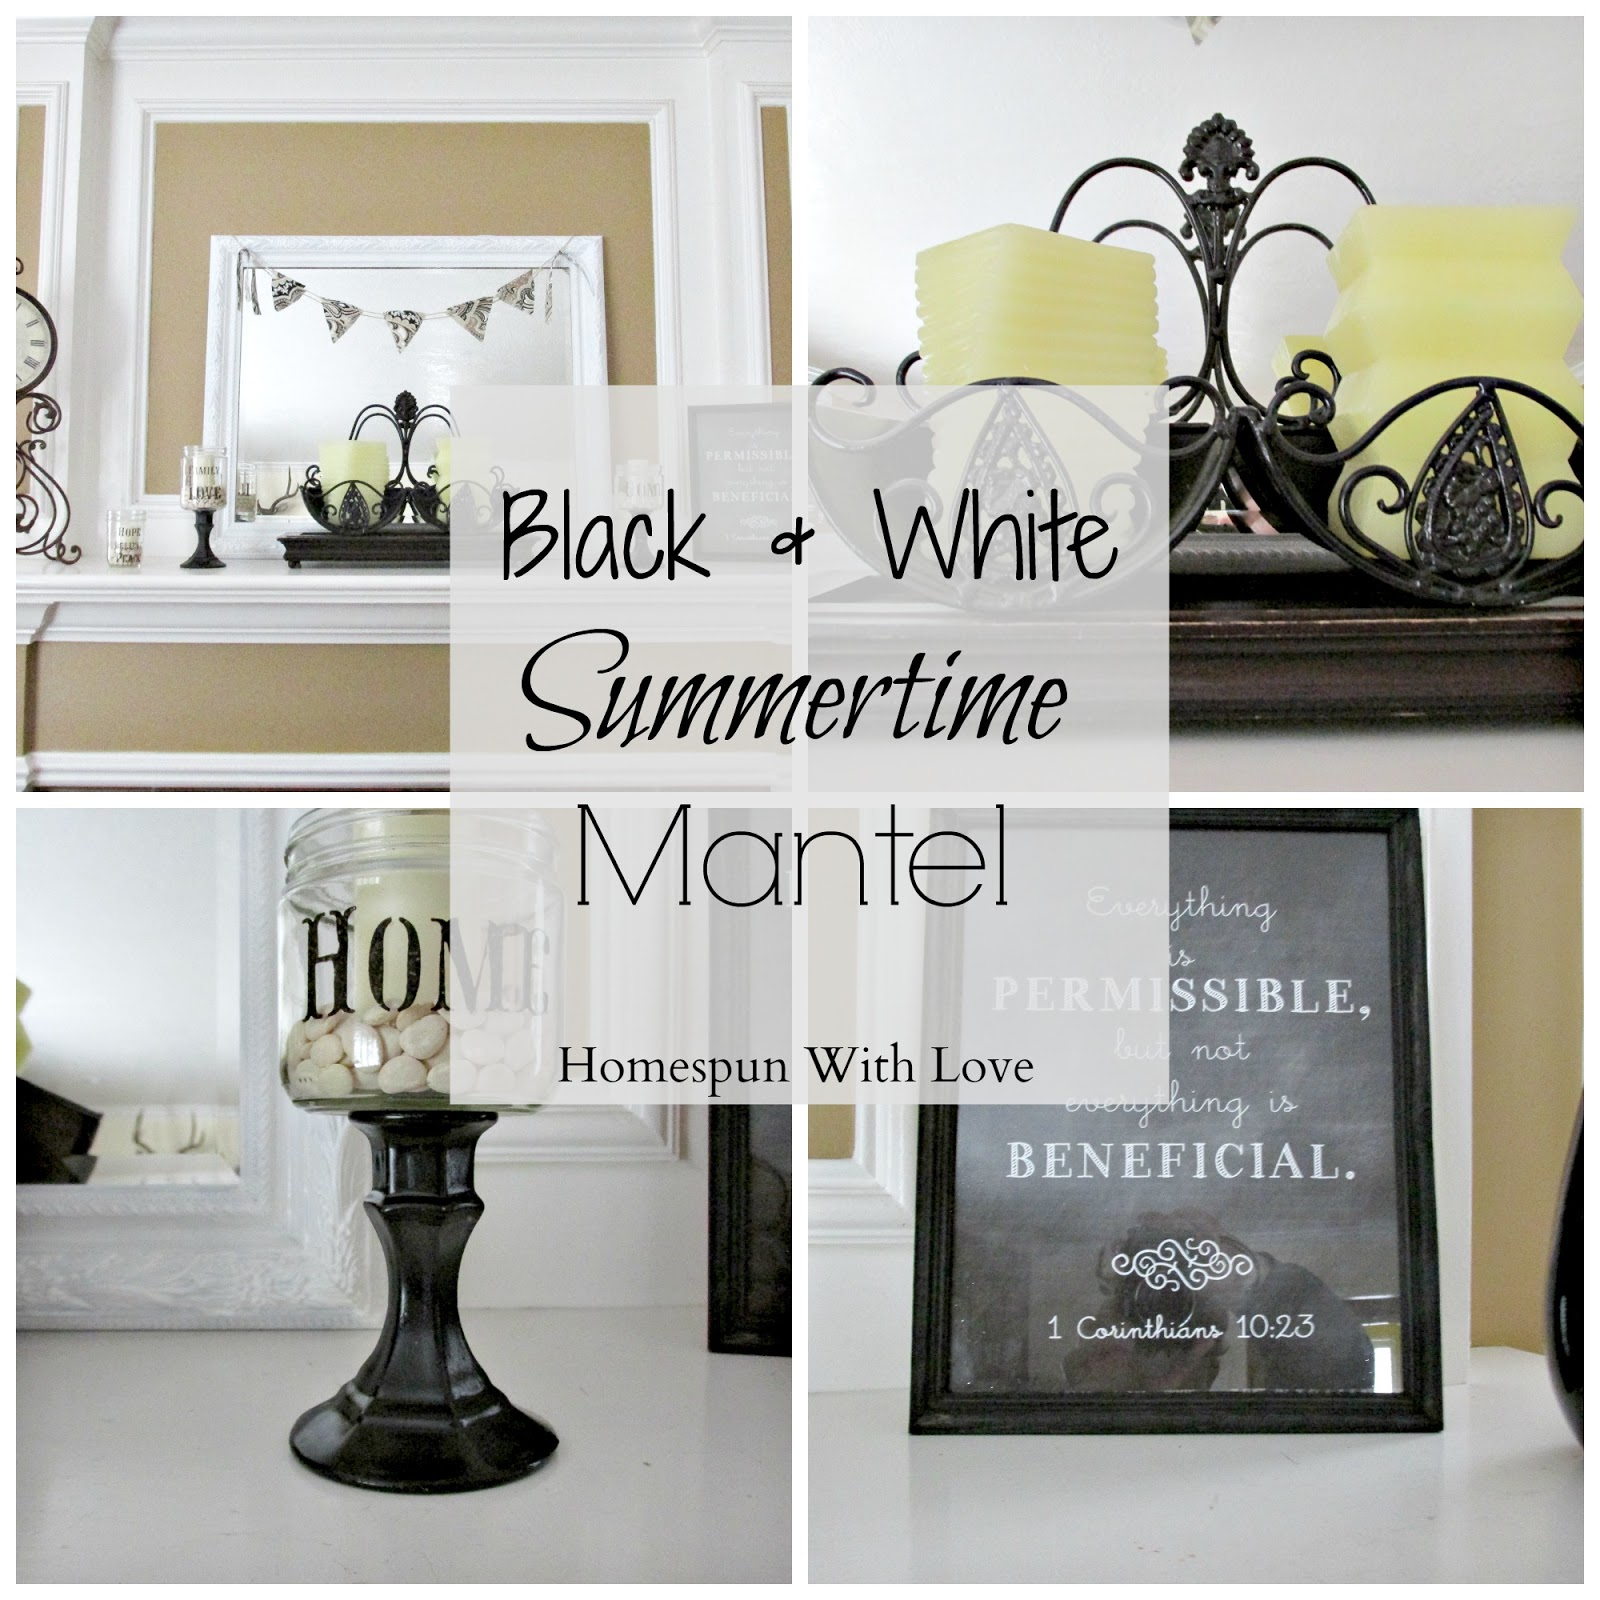 homespun with love: home decor/ black & white summertime mantel